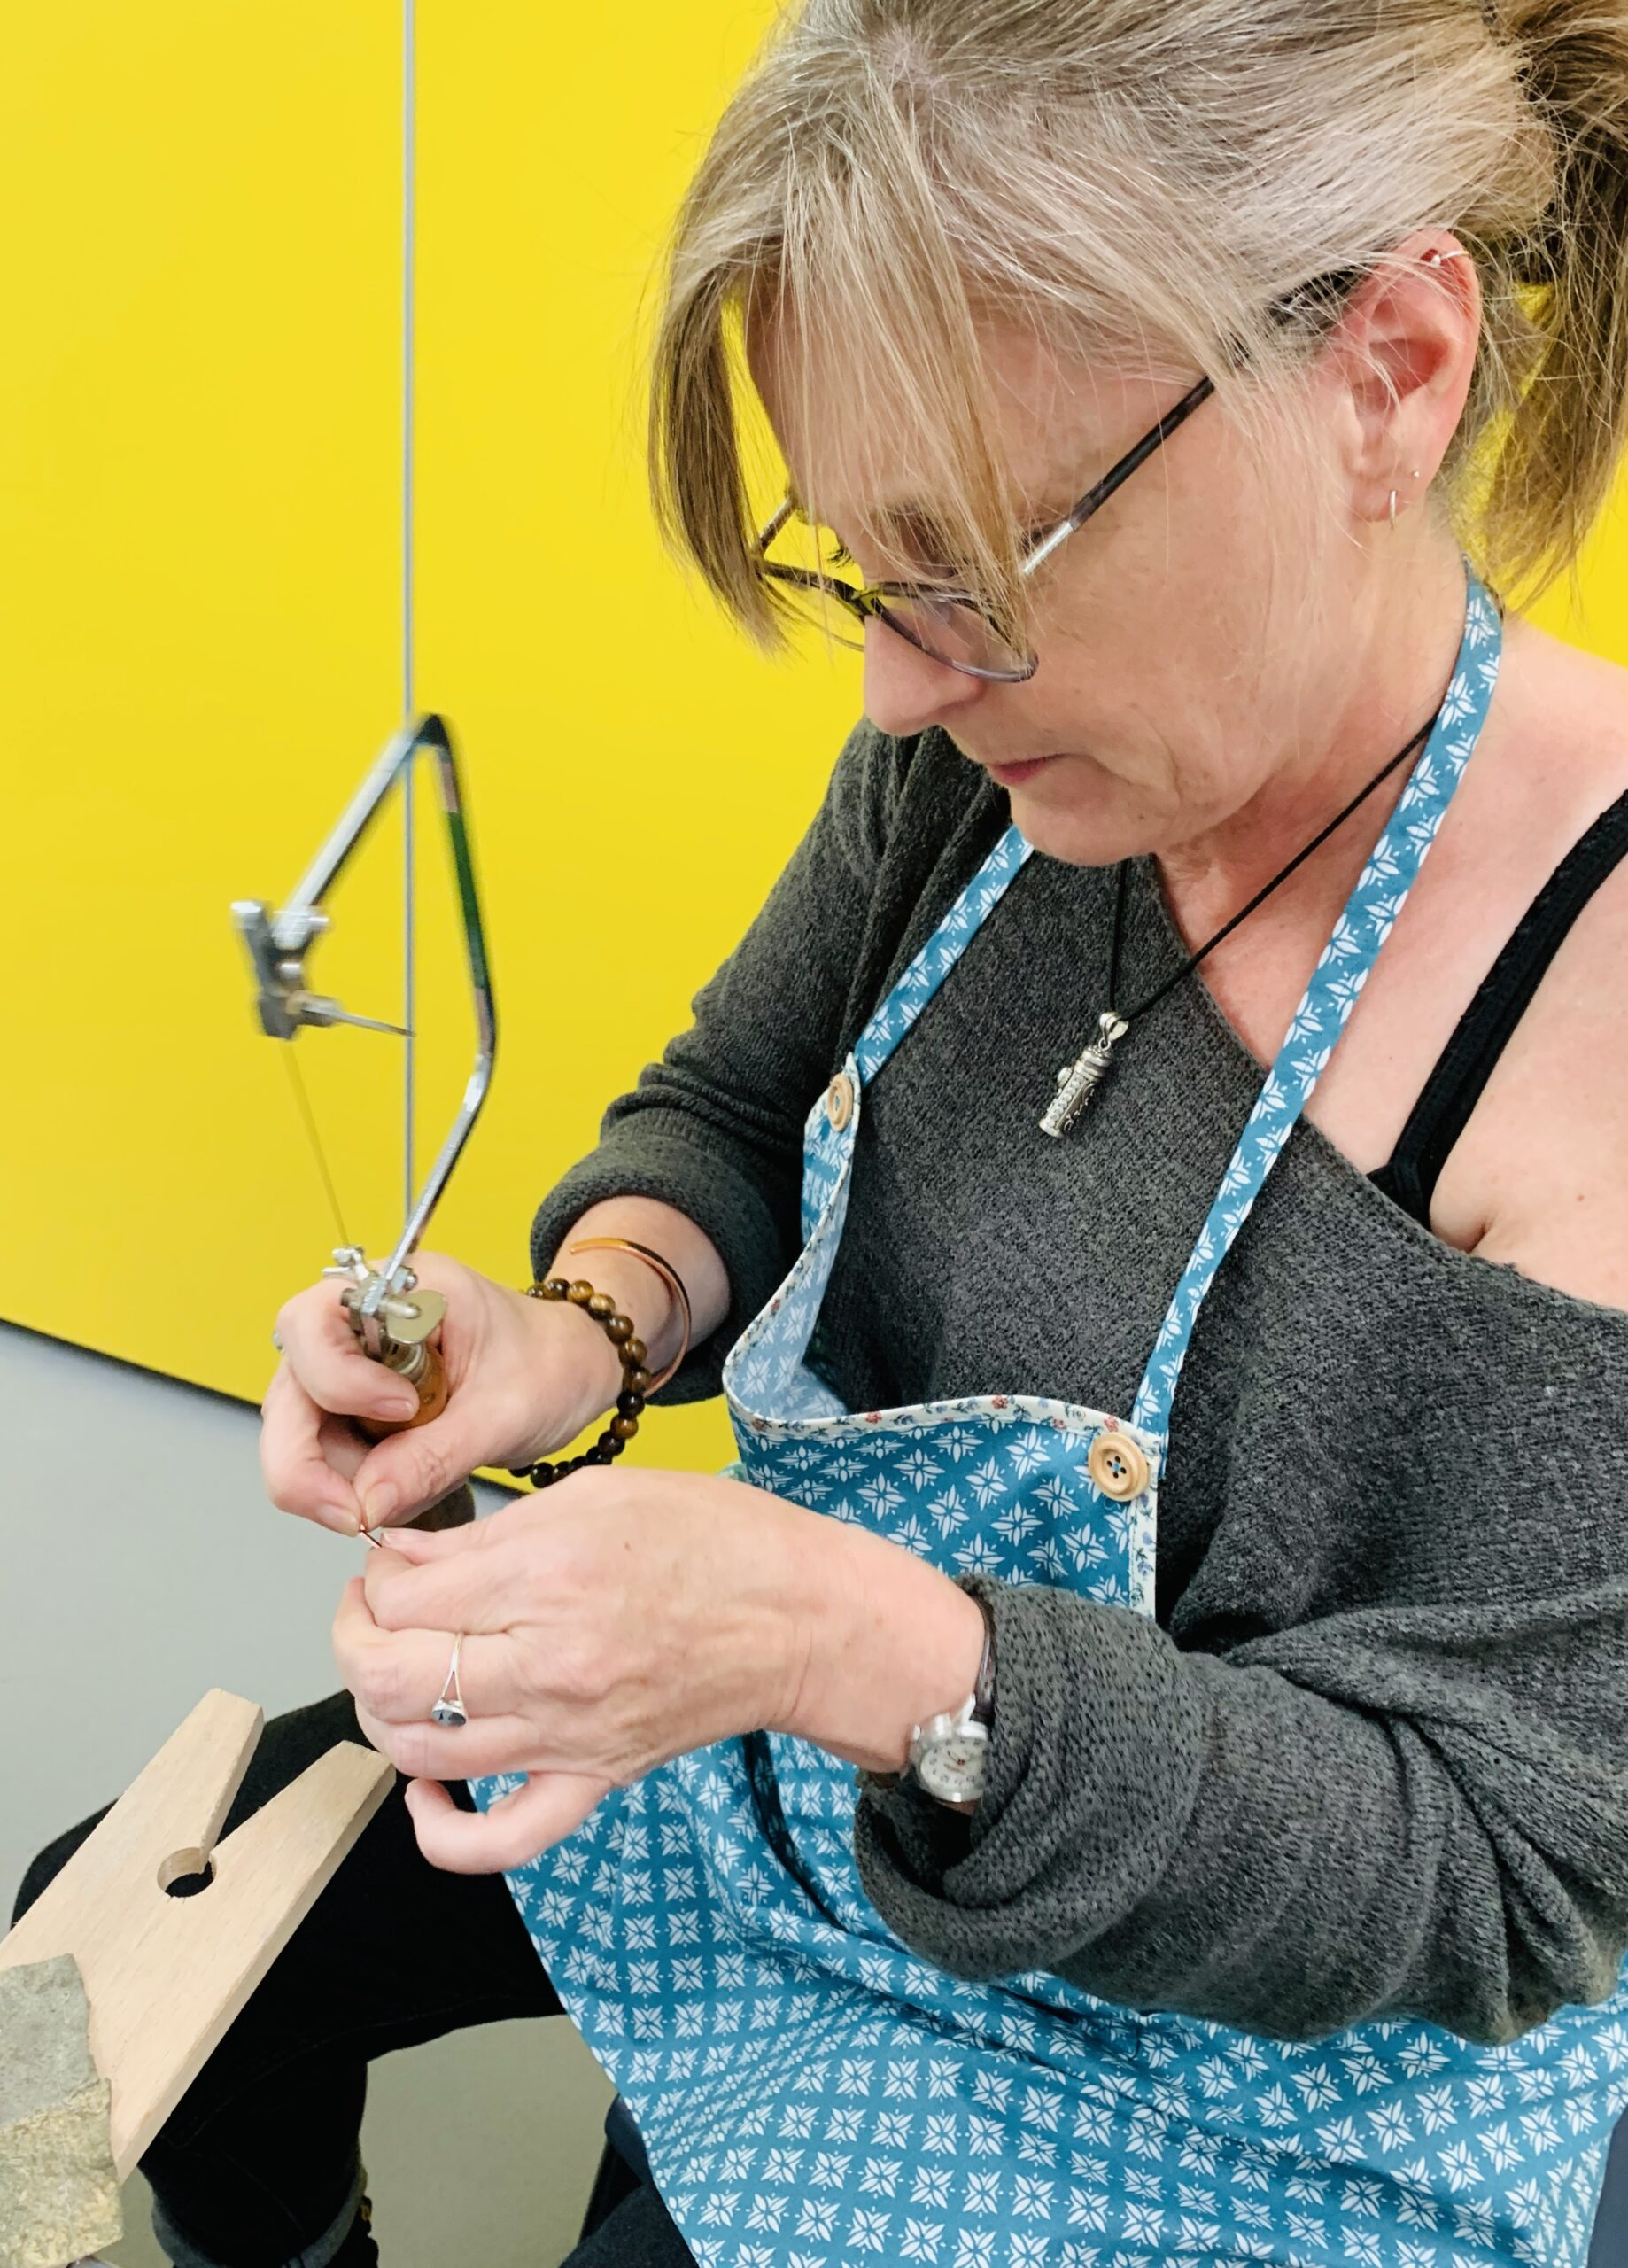 Jewellery making workshops with Colette Hazelwood at Derbyshire School of Jewellery